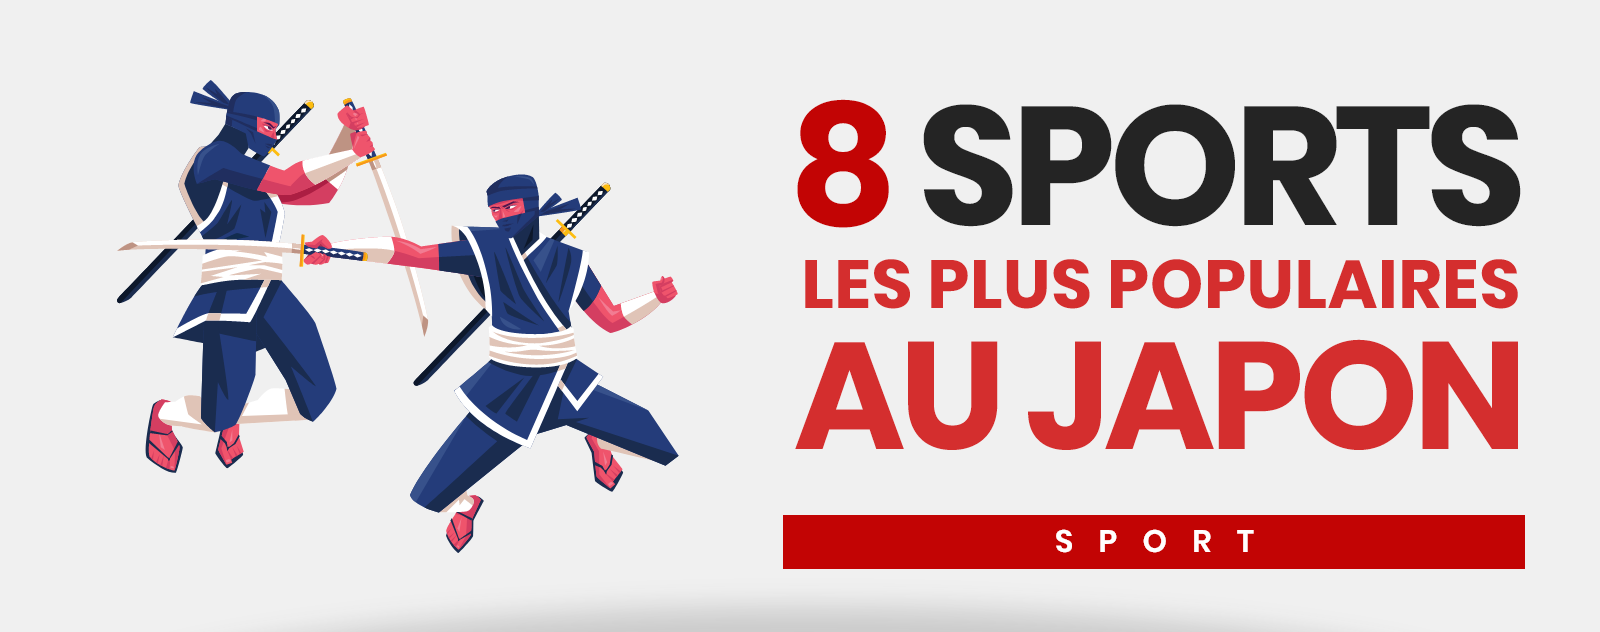 Les 8 Sports les Plus Populaires au Japon !